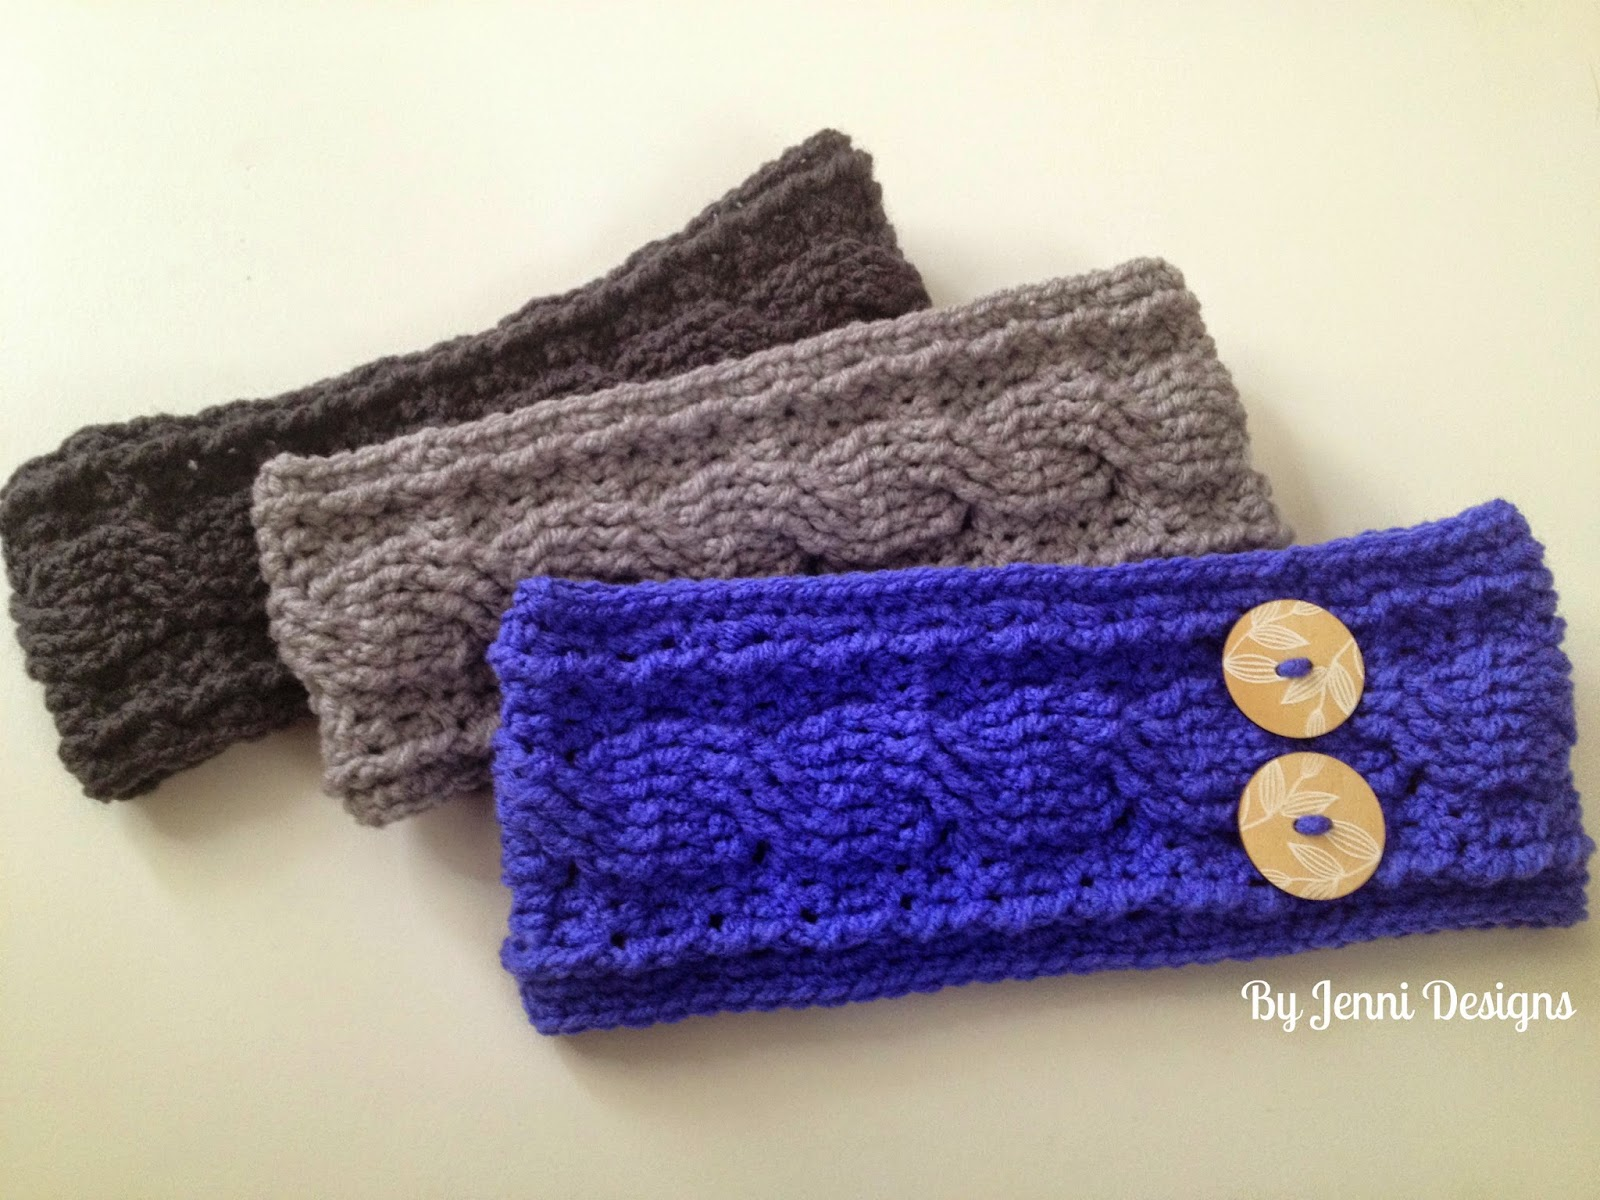 By Jenni Designs: Crochet Cable Ear Warmer Pattern